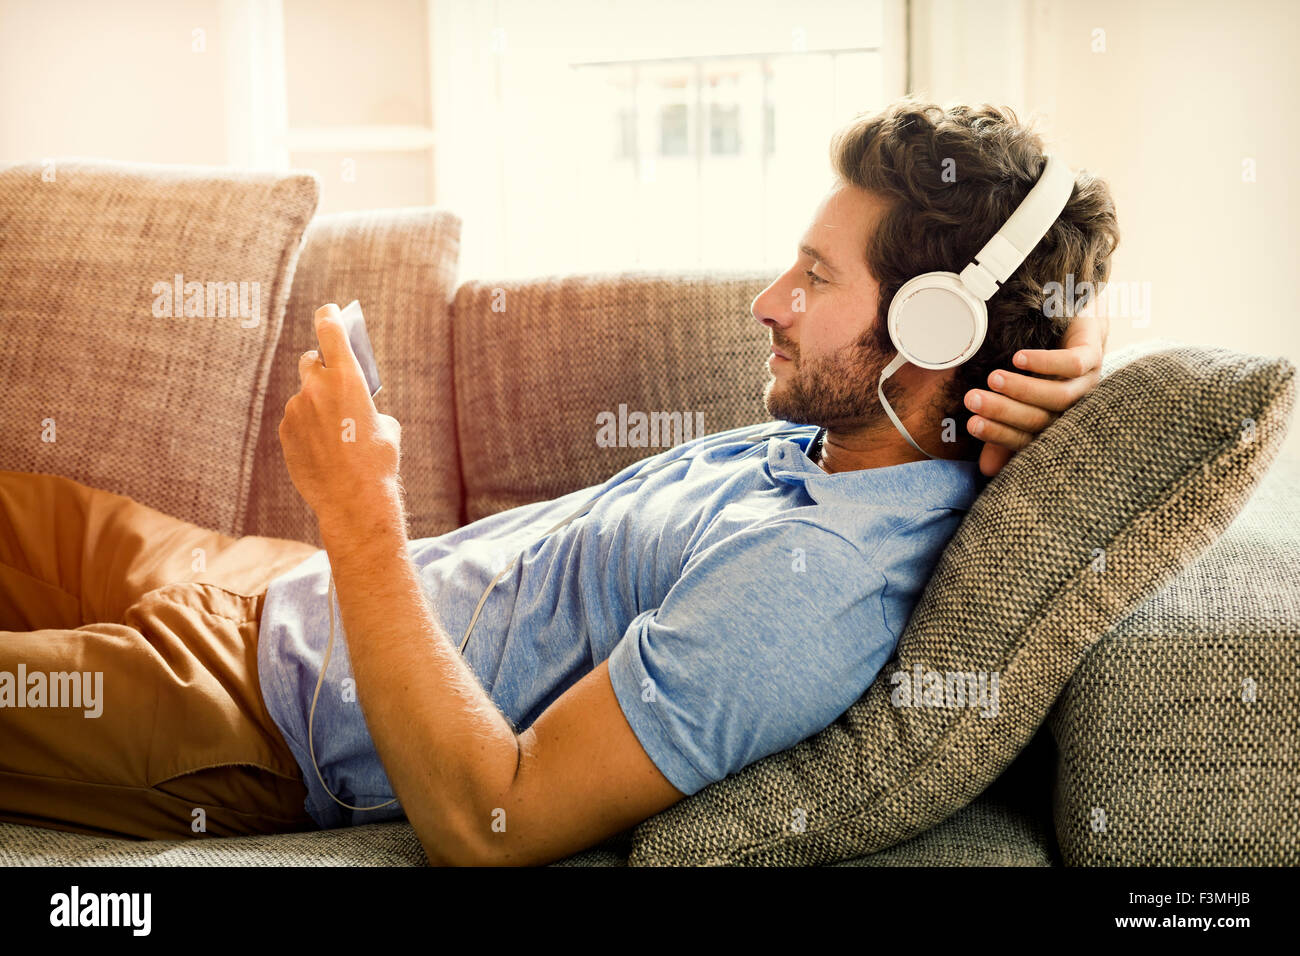 Man on couch watches a movie on mobile phone. Lens flare - Stock Image